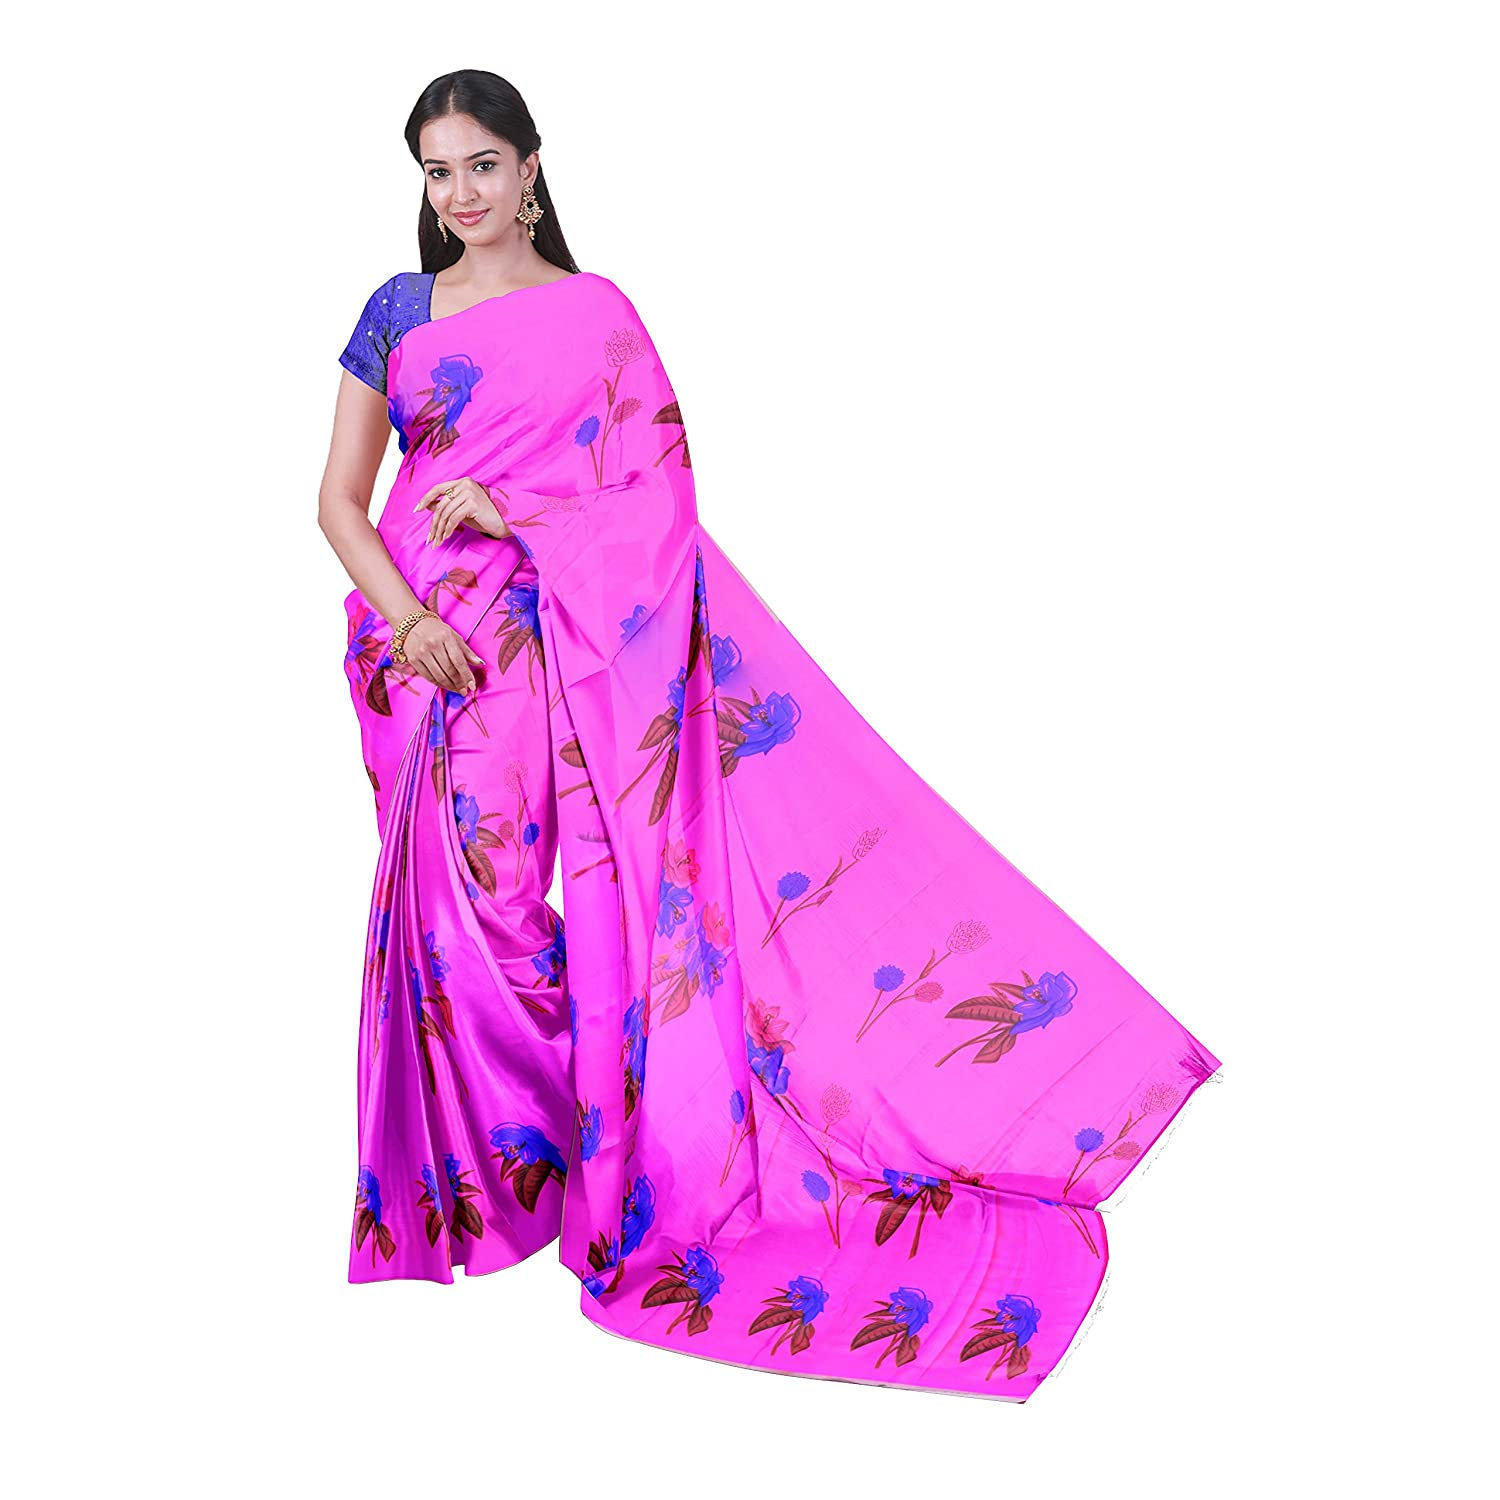 d50858c8990 KLM Fashion Mall Women s SYNTHETICS SAREE (PINK   BLUE)  Amazon.in  Clothing    Accessories